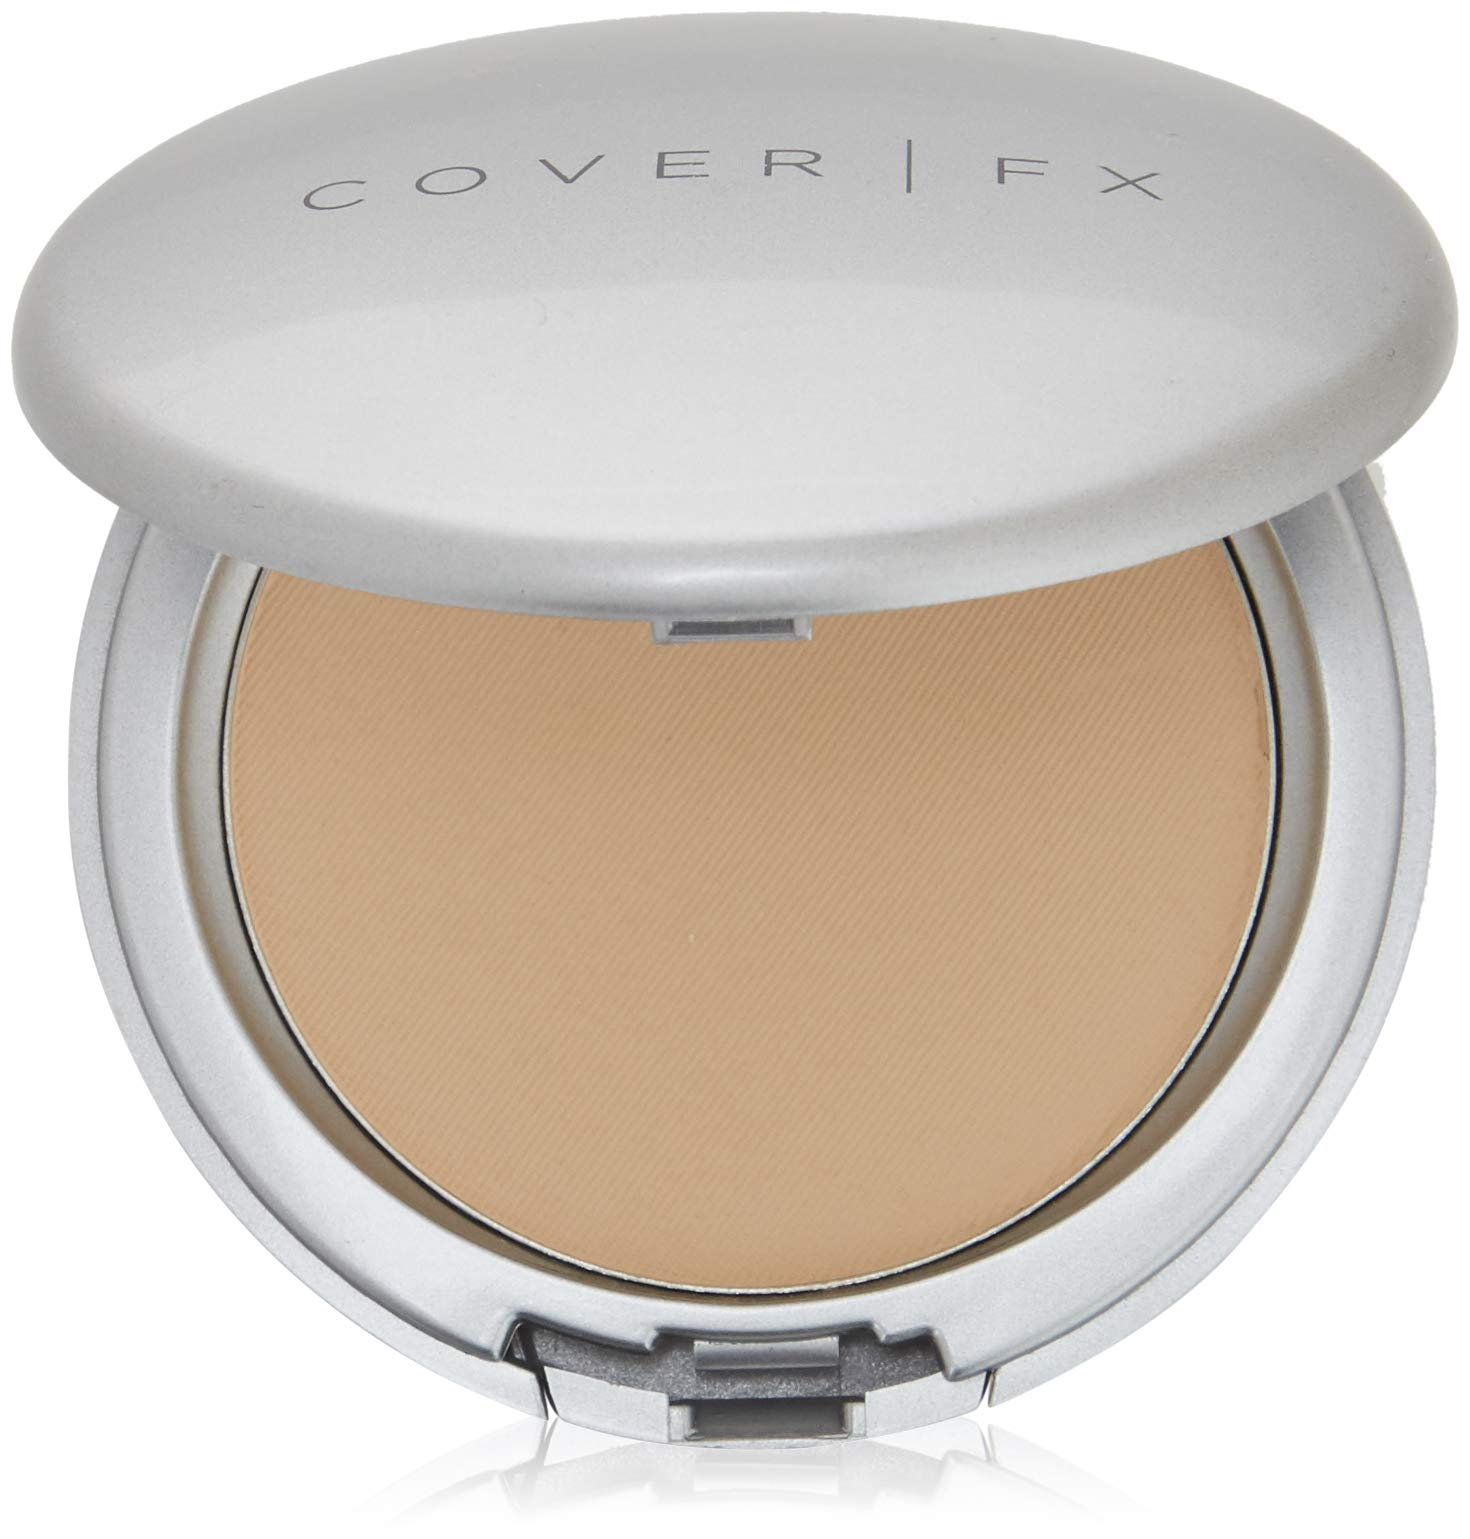 Cover FX Blotting Powder, Light, 0.35 Ounce by Cover FX